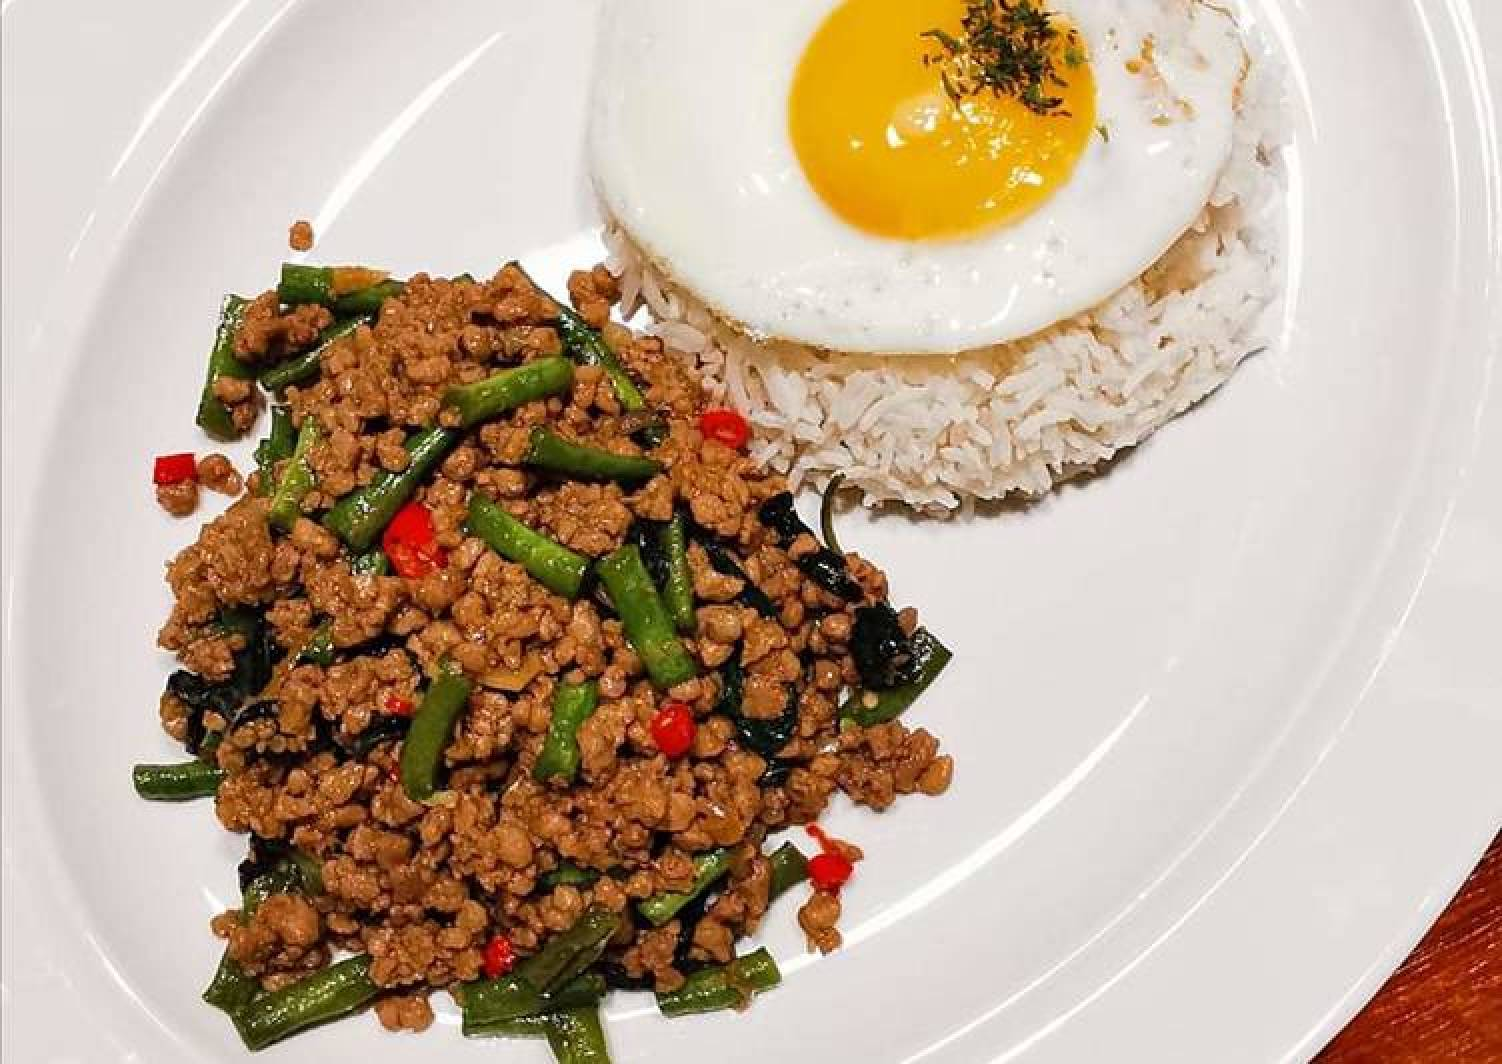 泰式羅勒炒豬肉碎 THAI BASIL MINCED PORK WITH RICE (PAD KRA PAO)